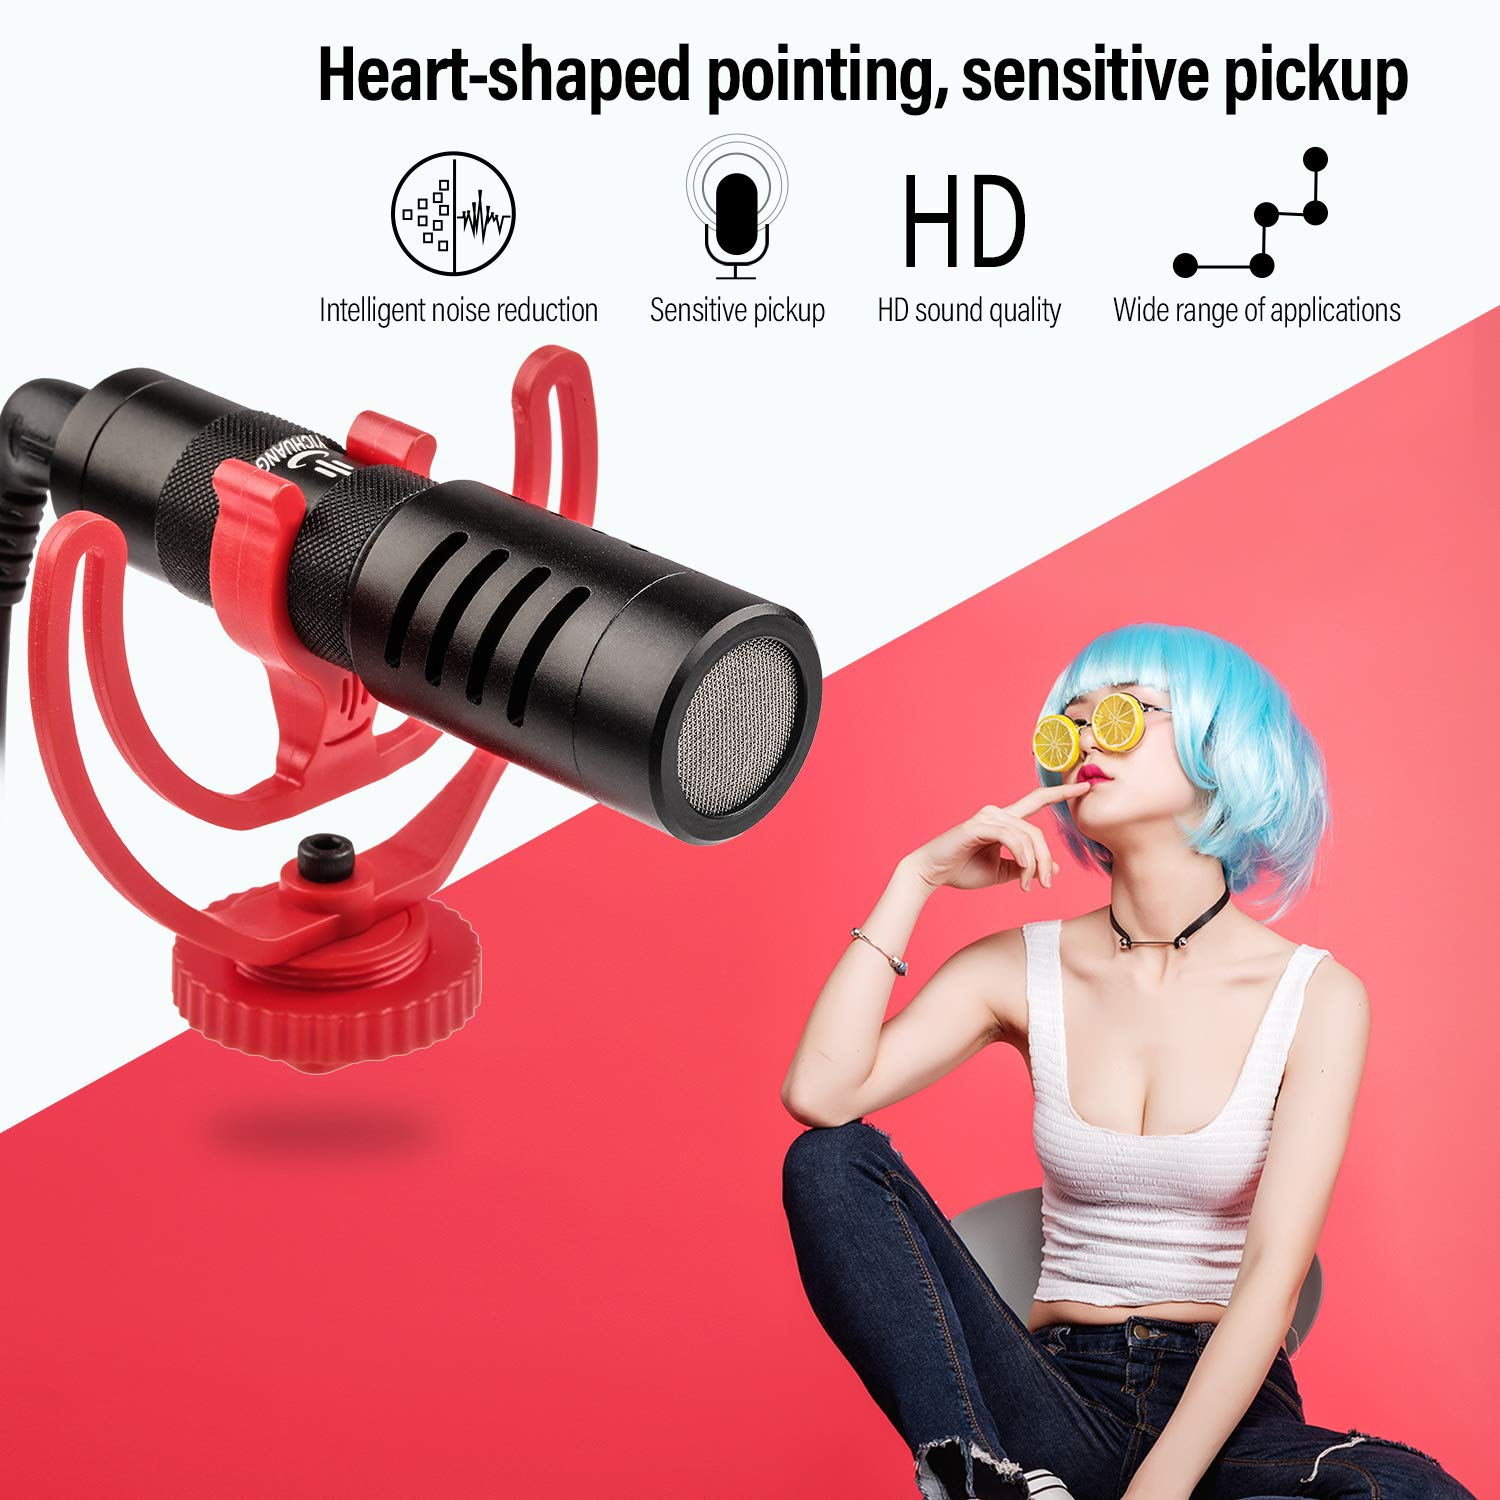 VILTROX Video Microphone YouTube Vlogging Facebook Livestream Recording Shotgun Mic for iPhone Huawei Smartphone DJI Osmo Mobile 2,for ZHIYUN Smooth 4